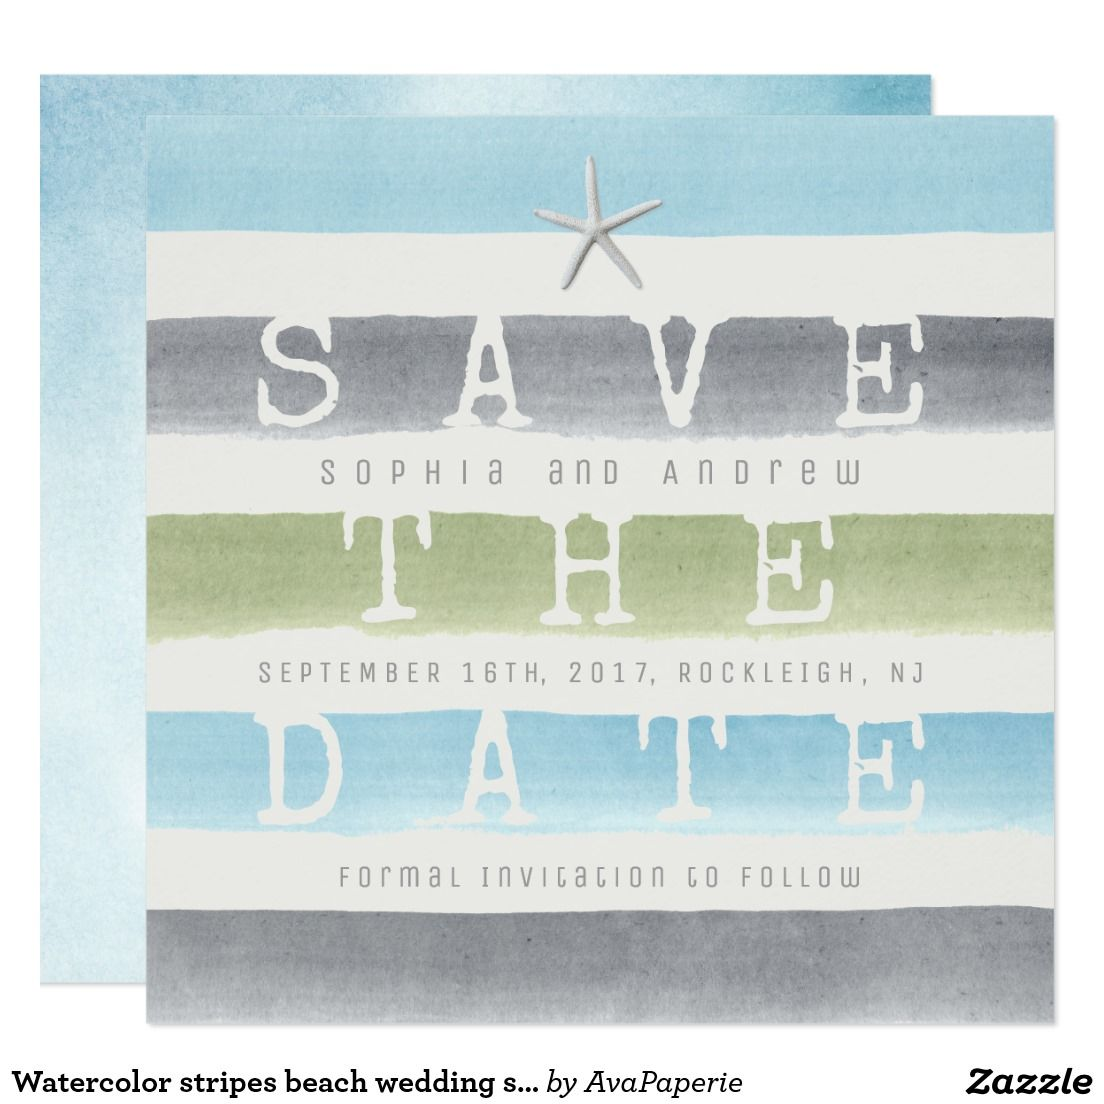 Watercolor stripes beach wedding save the date | SUMMER WEDDING ...